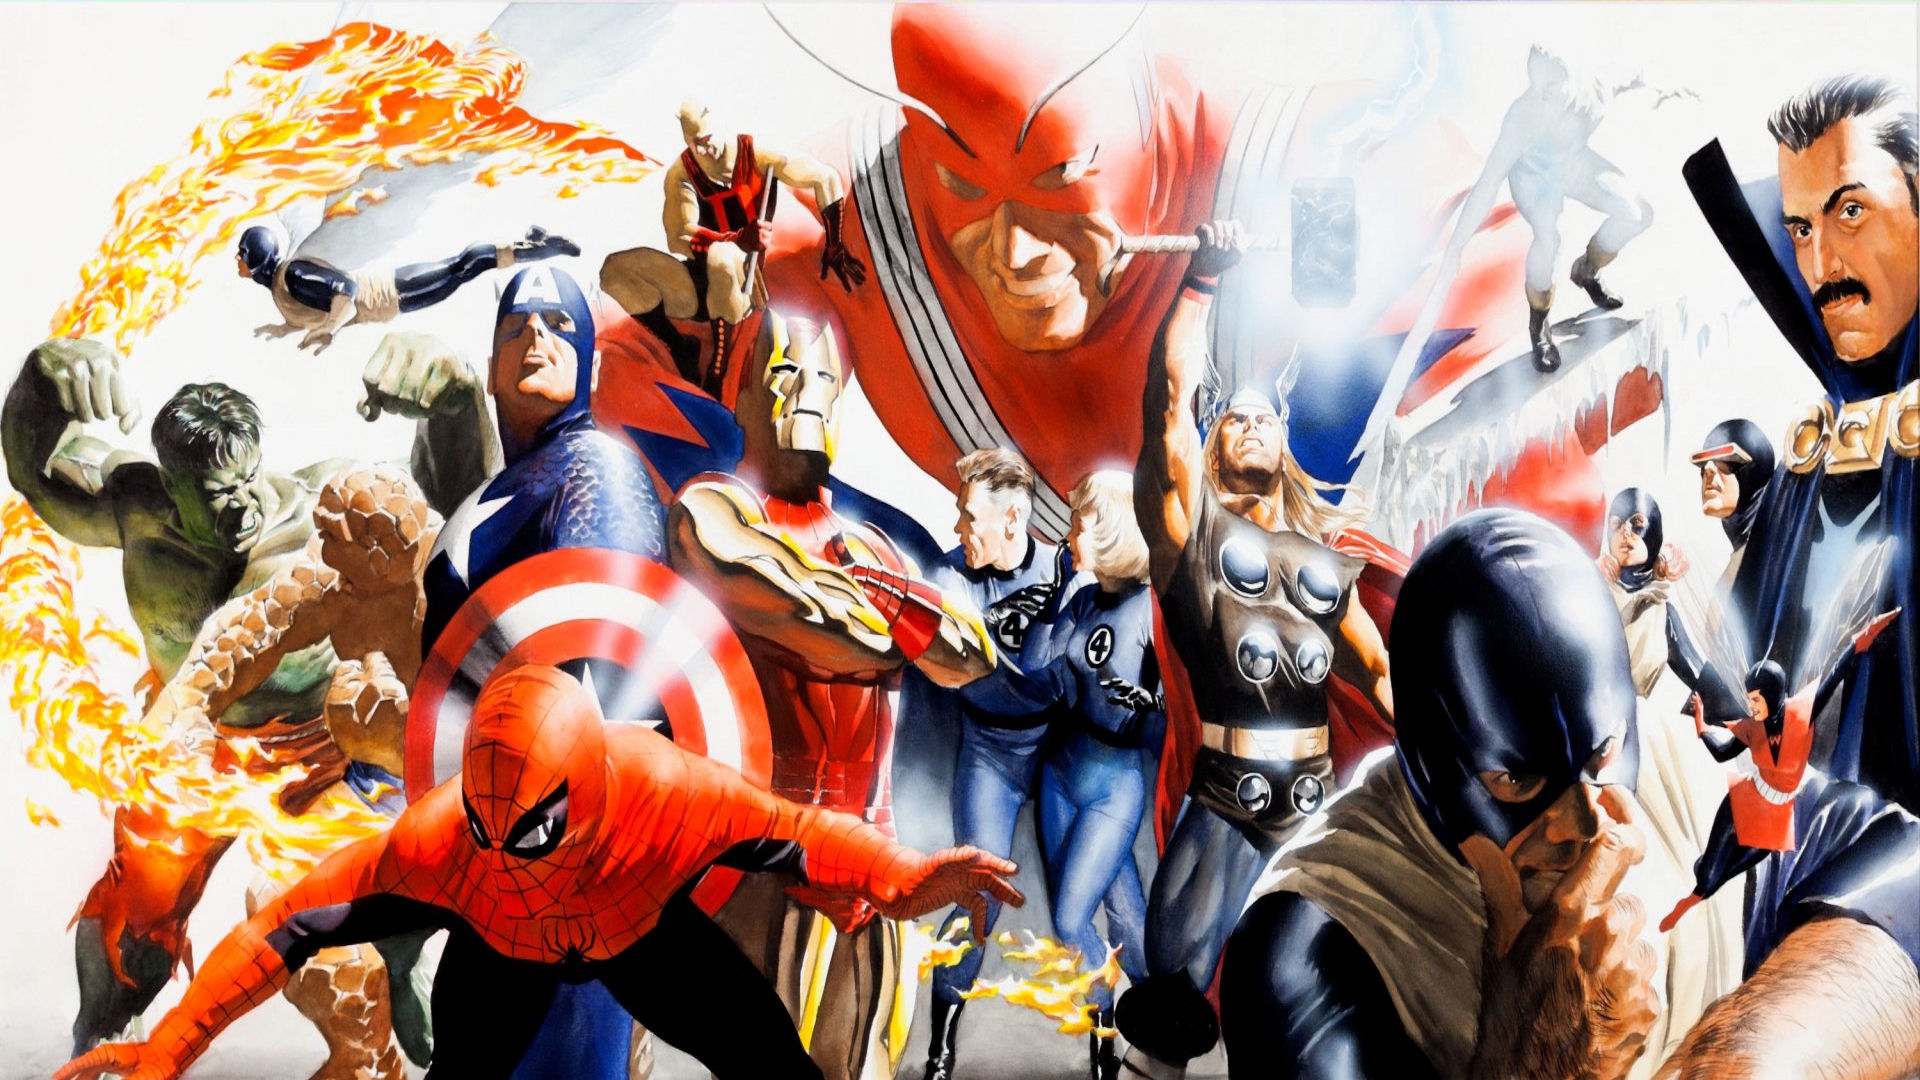 Cool Marvel Wallpapers HD #2 - Epic Heroes Select - 45 x ...